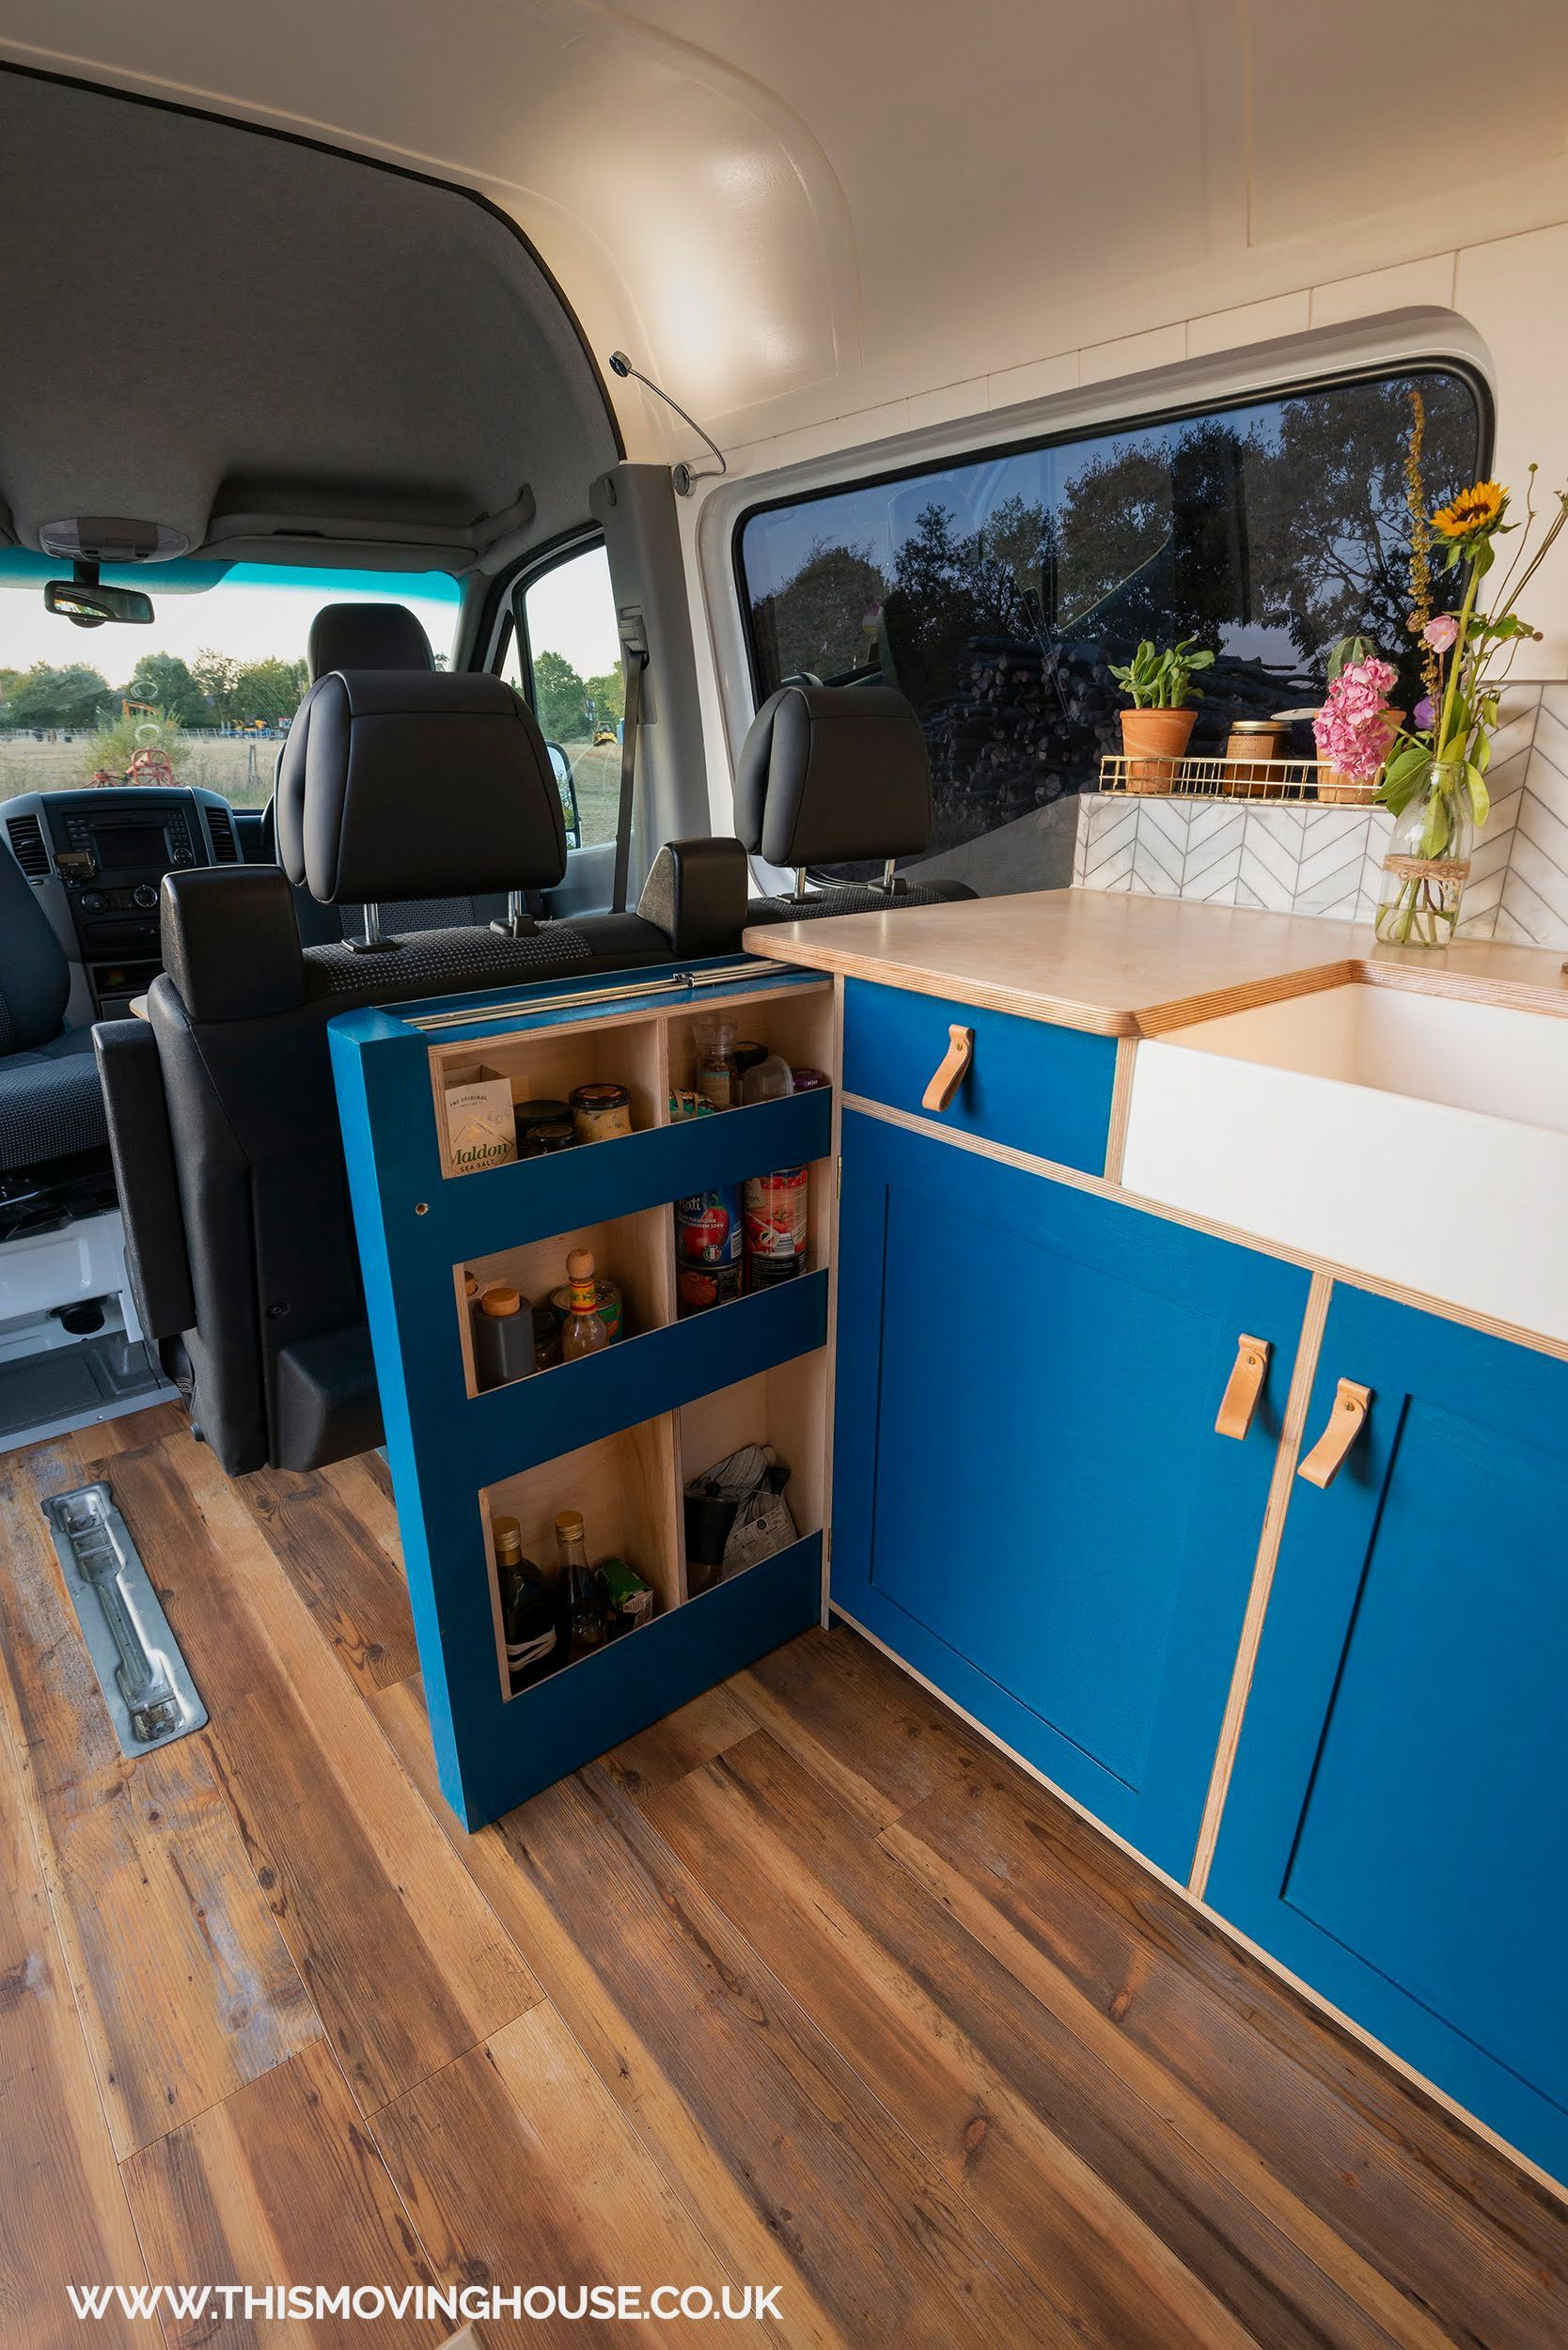 Slide out storage in a camper van kitchen with a belfast sink available from thi...  #available #belfast #camper #kitchen #slide #storage